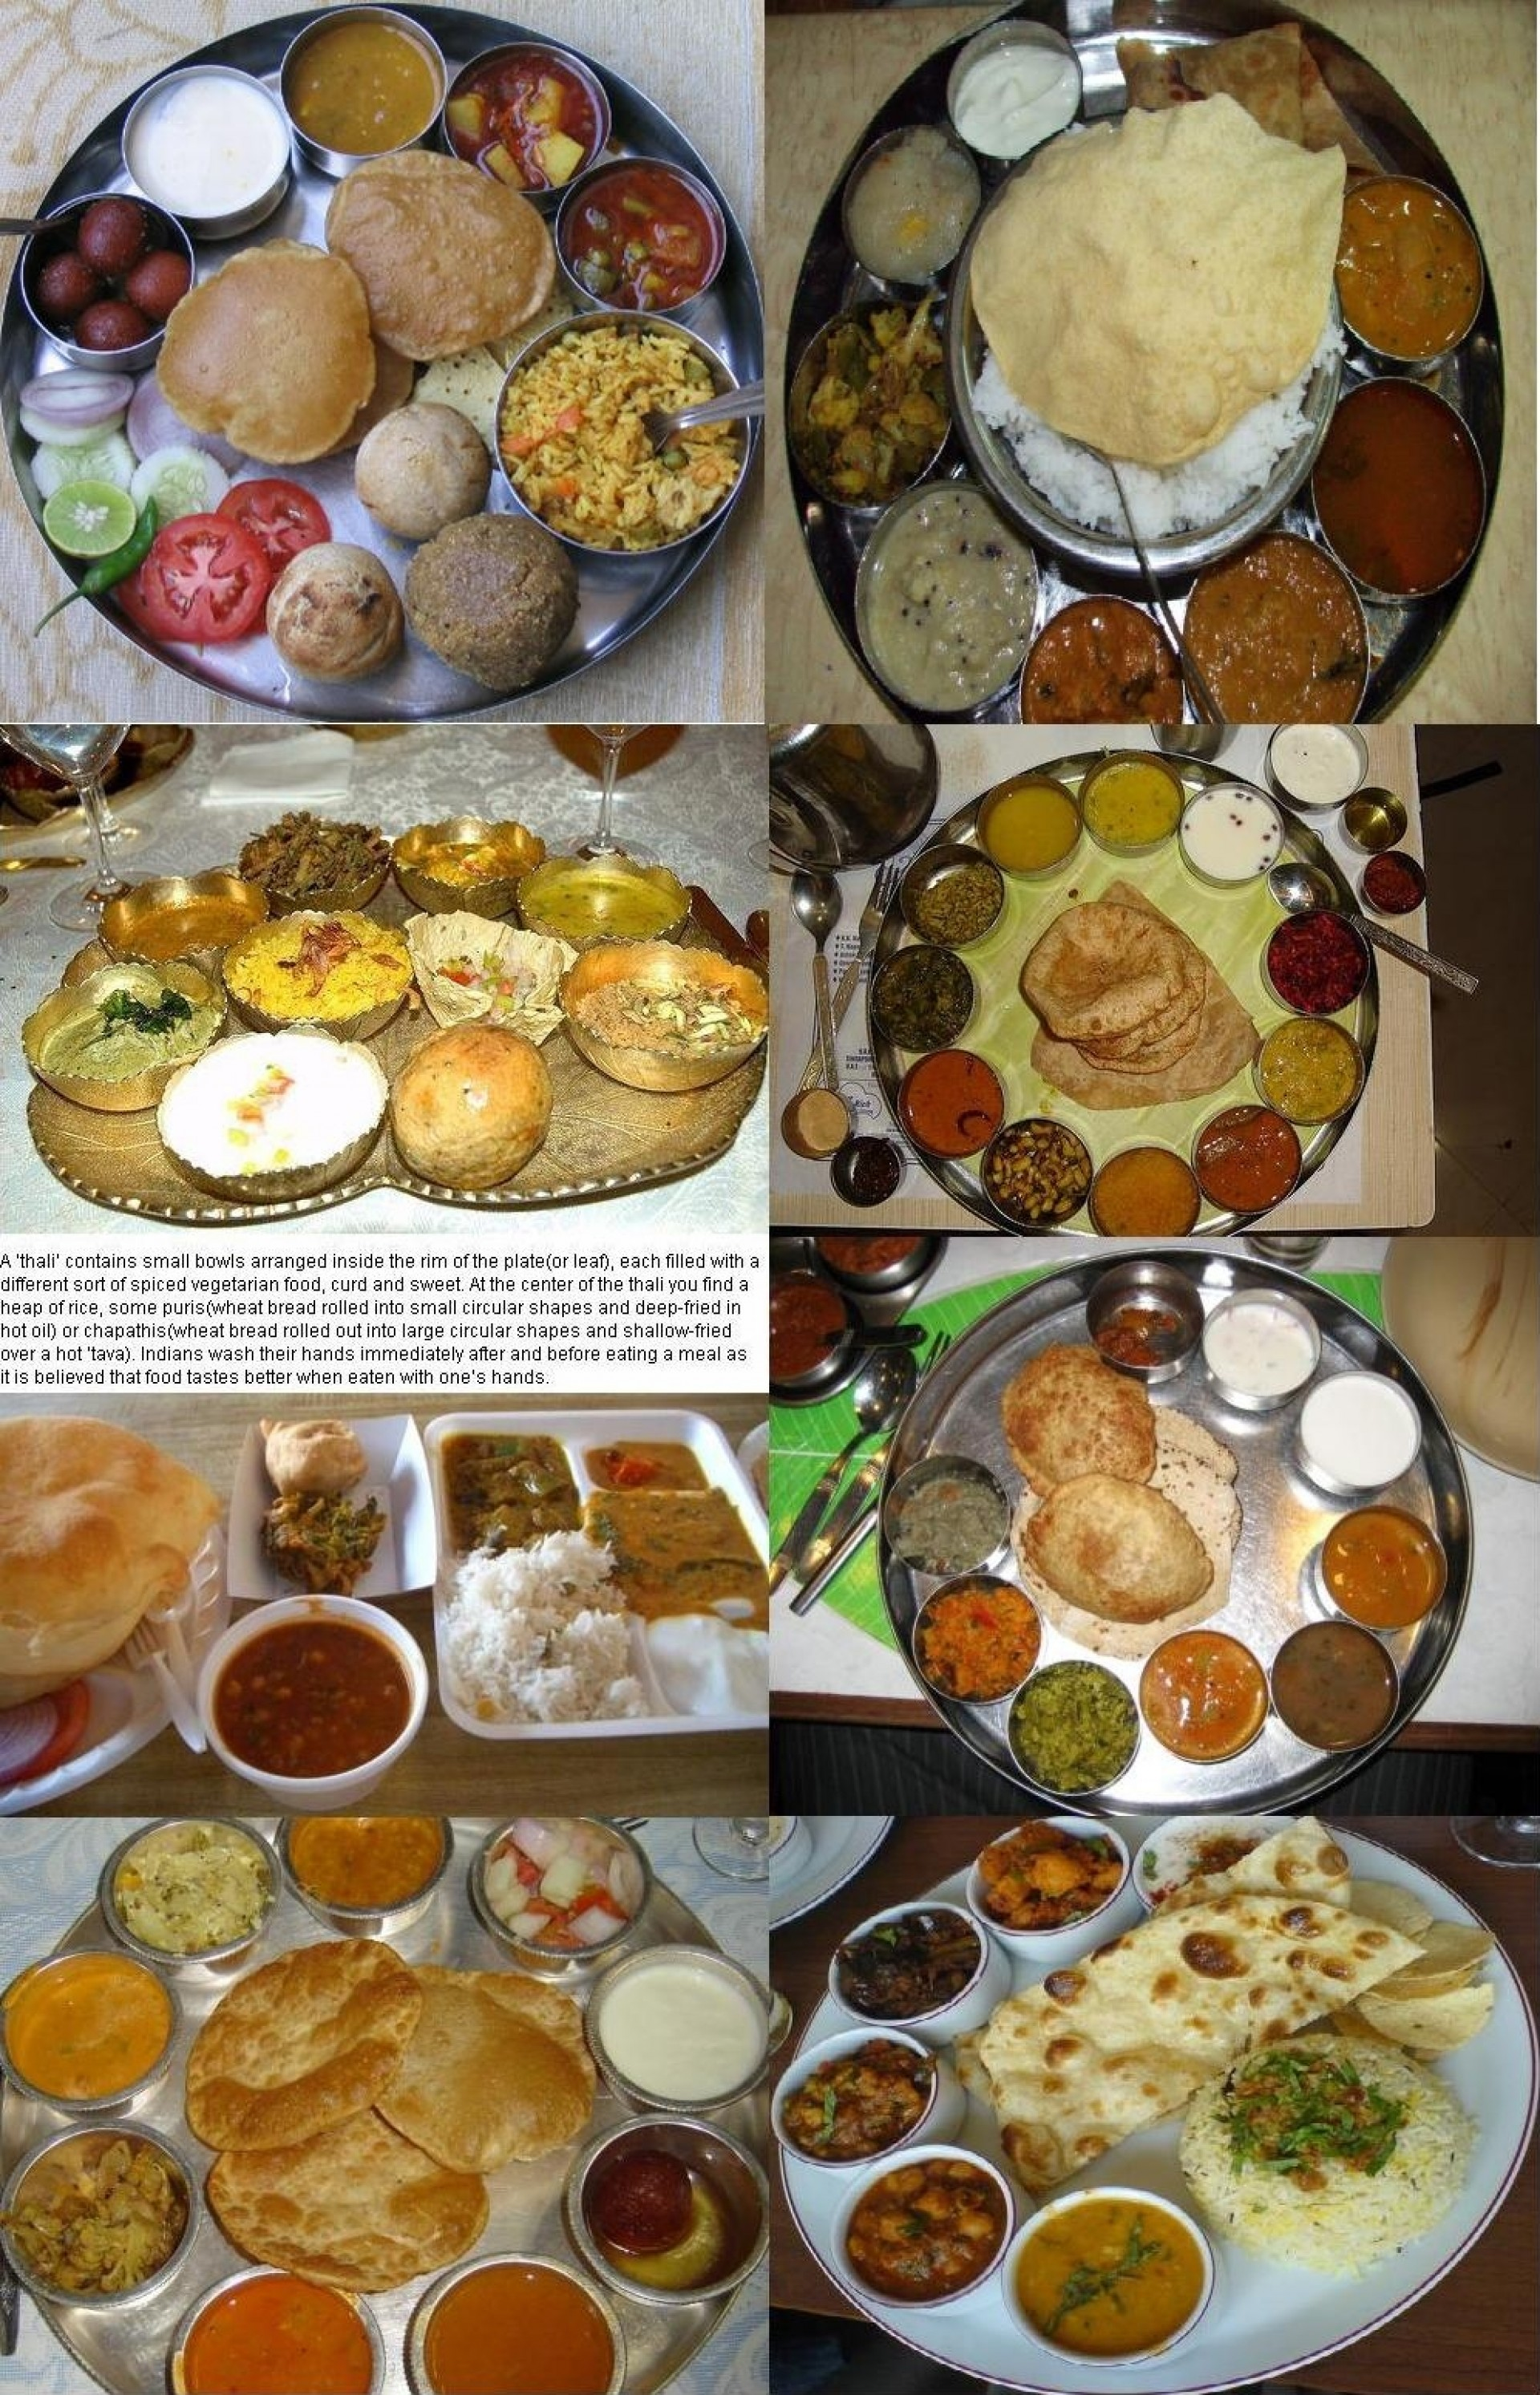 food culture in different regions of india